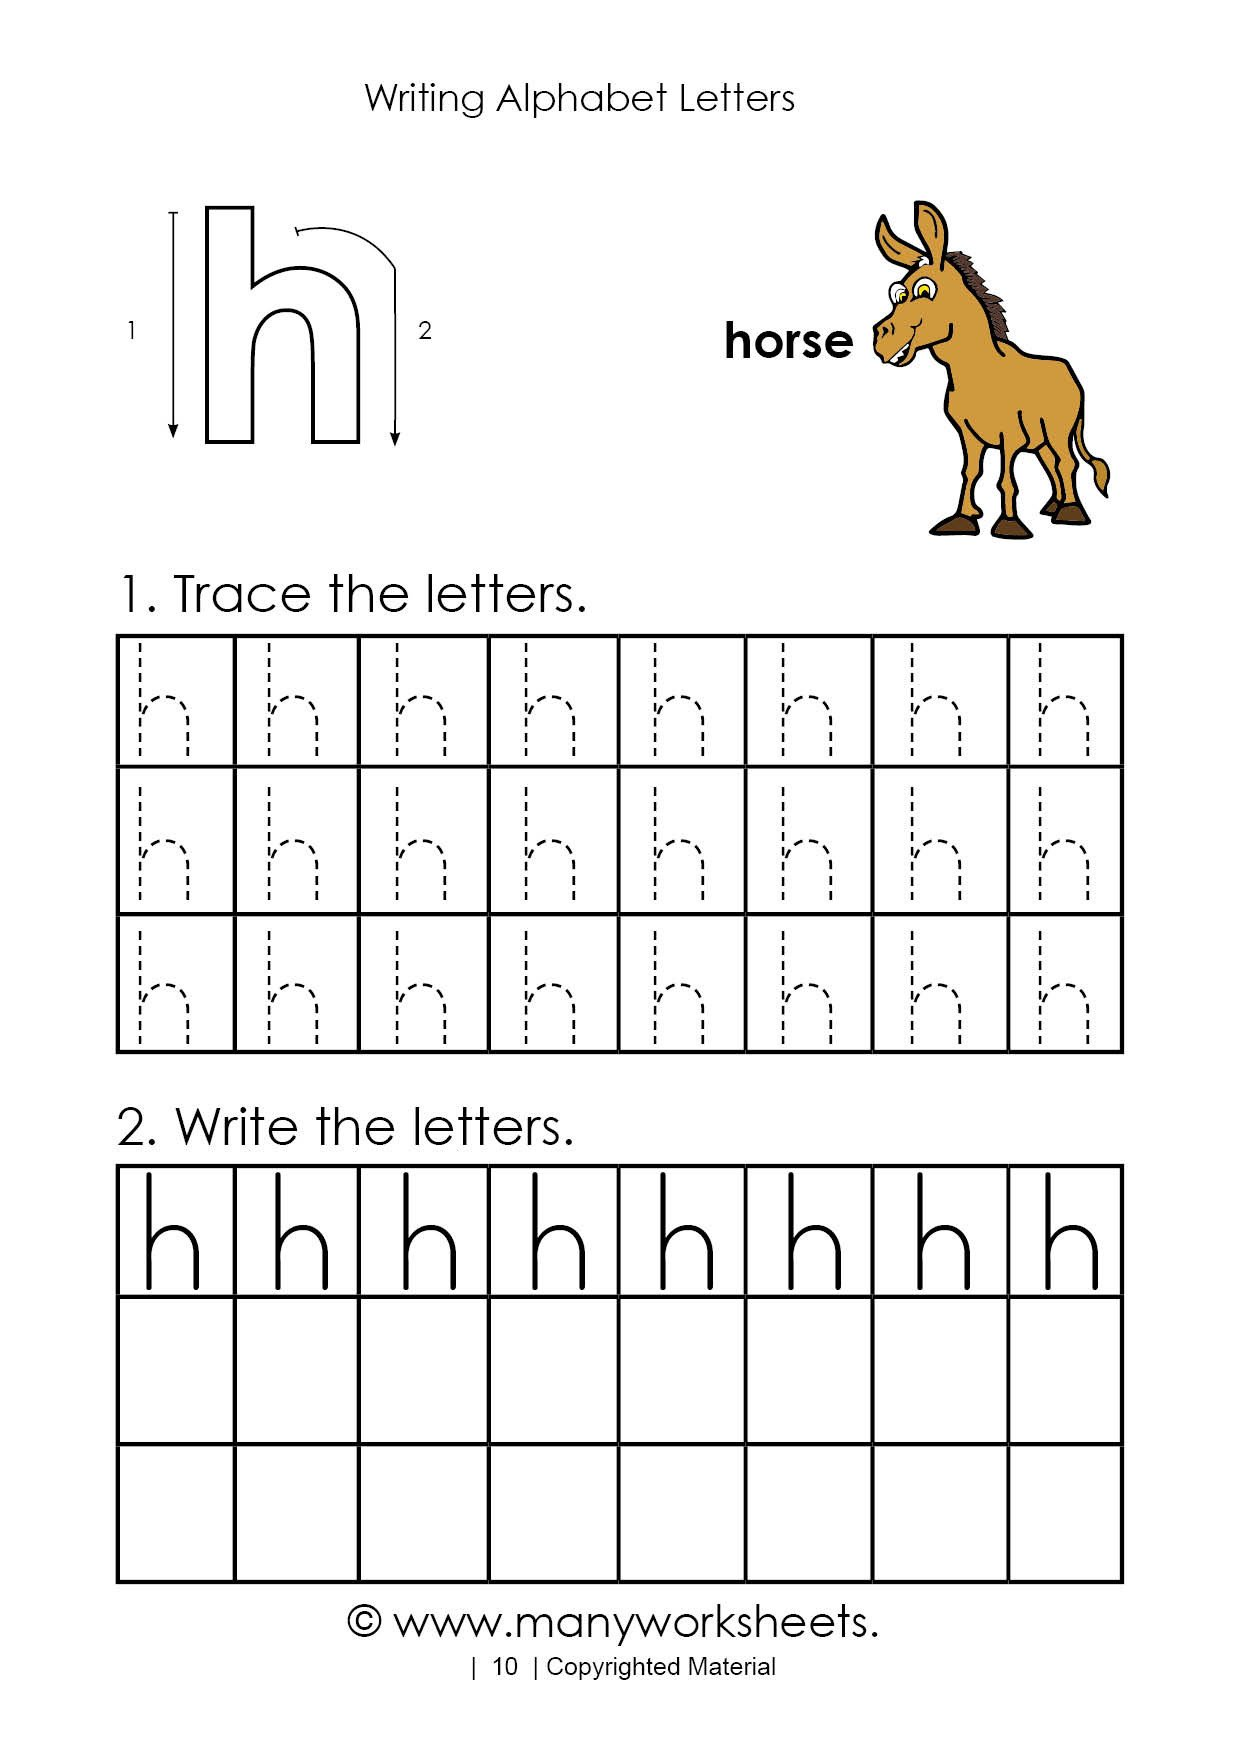 Letter H Worksheets Free Tracing Letter H Worksheet for Kindergarten